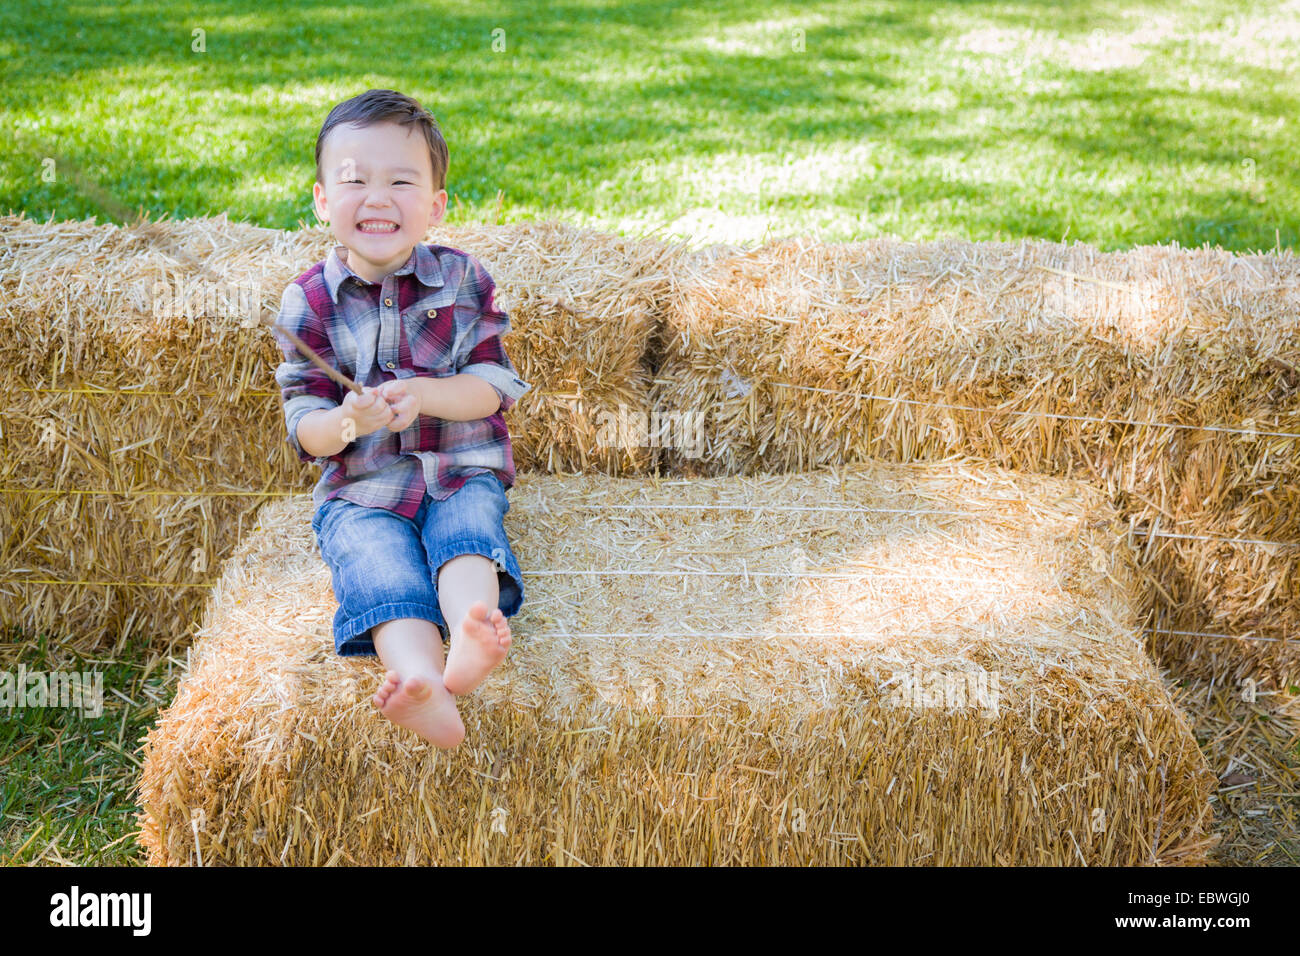 Cute Young Mixed Race Boy having fun on Hay Bale à l'extérieur. Photo Stock